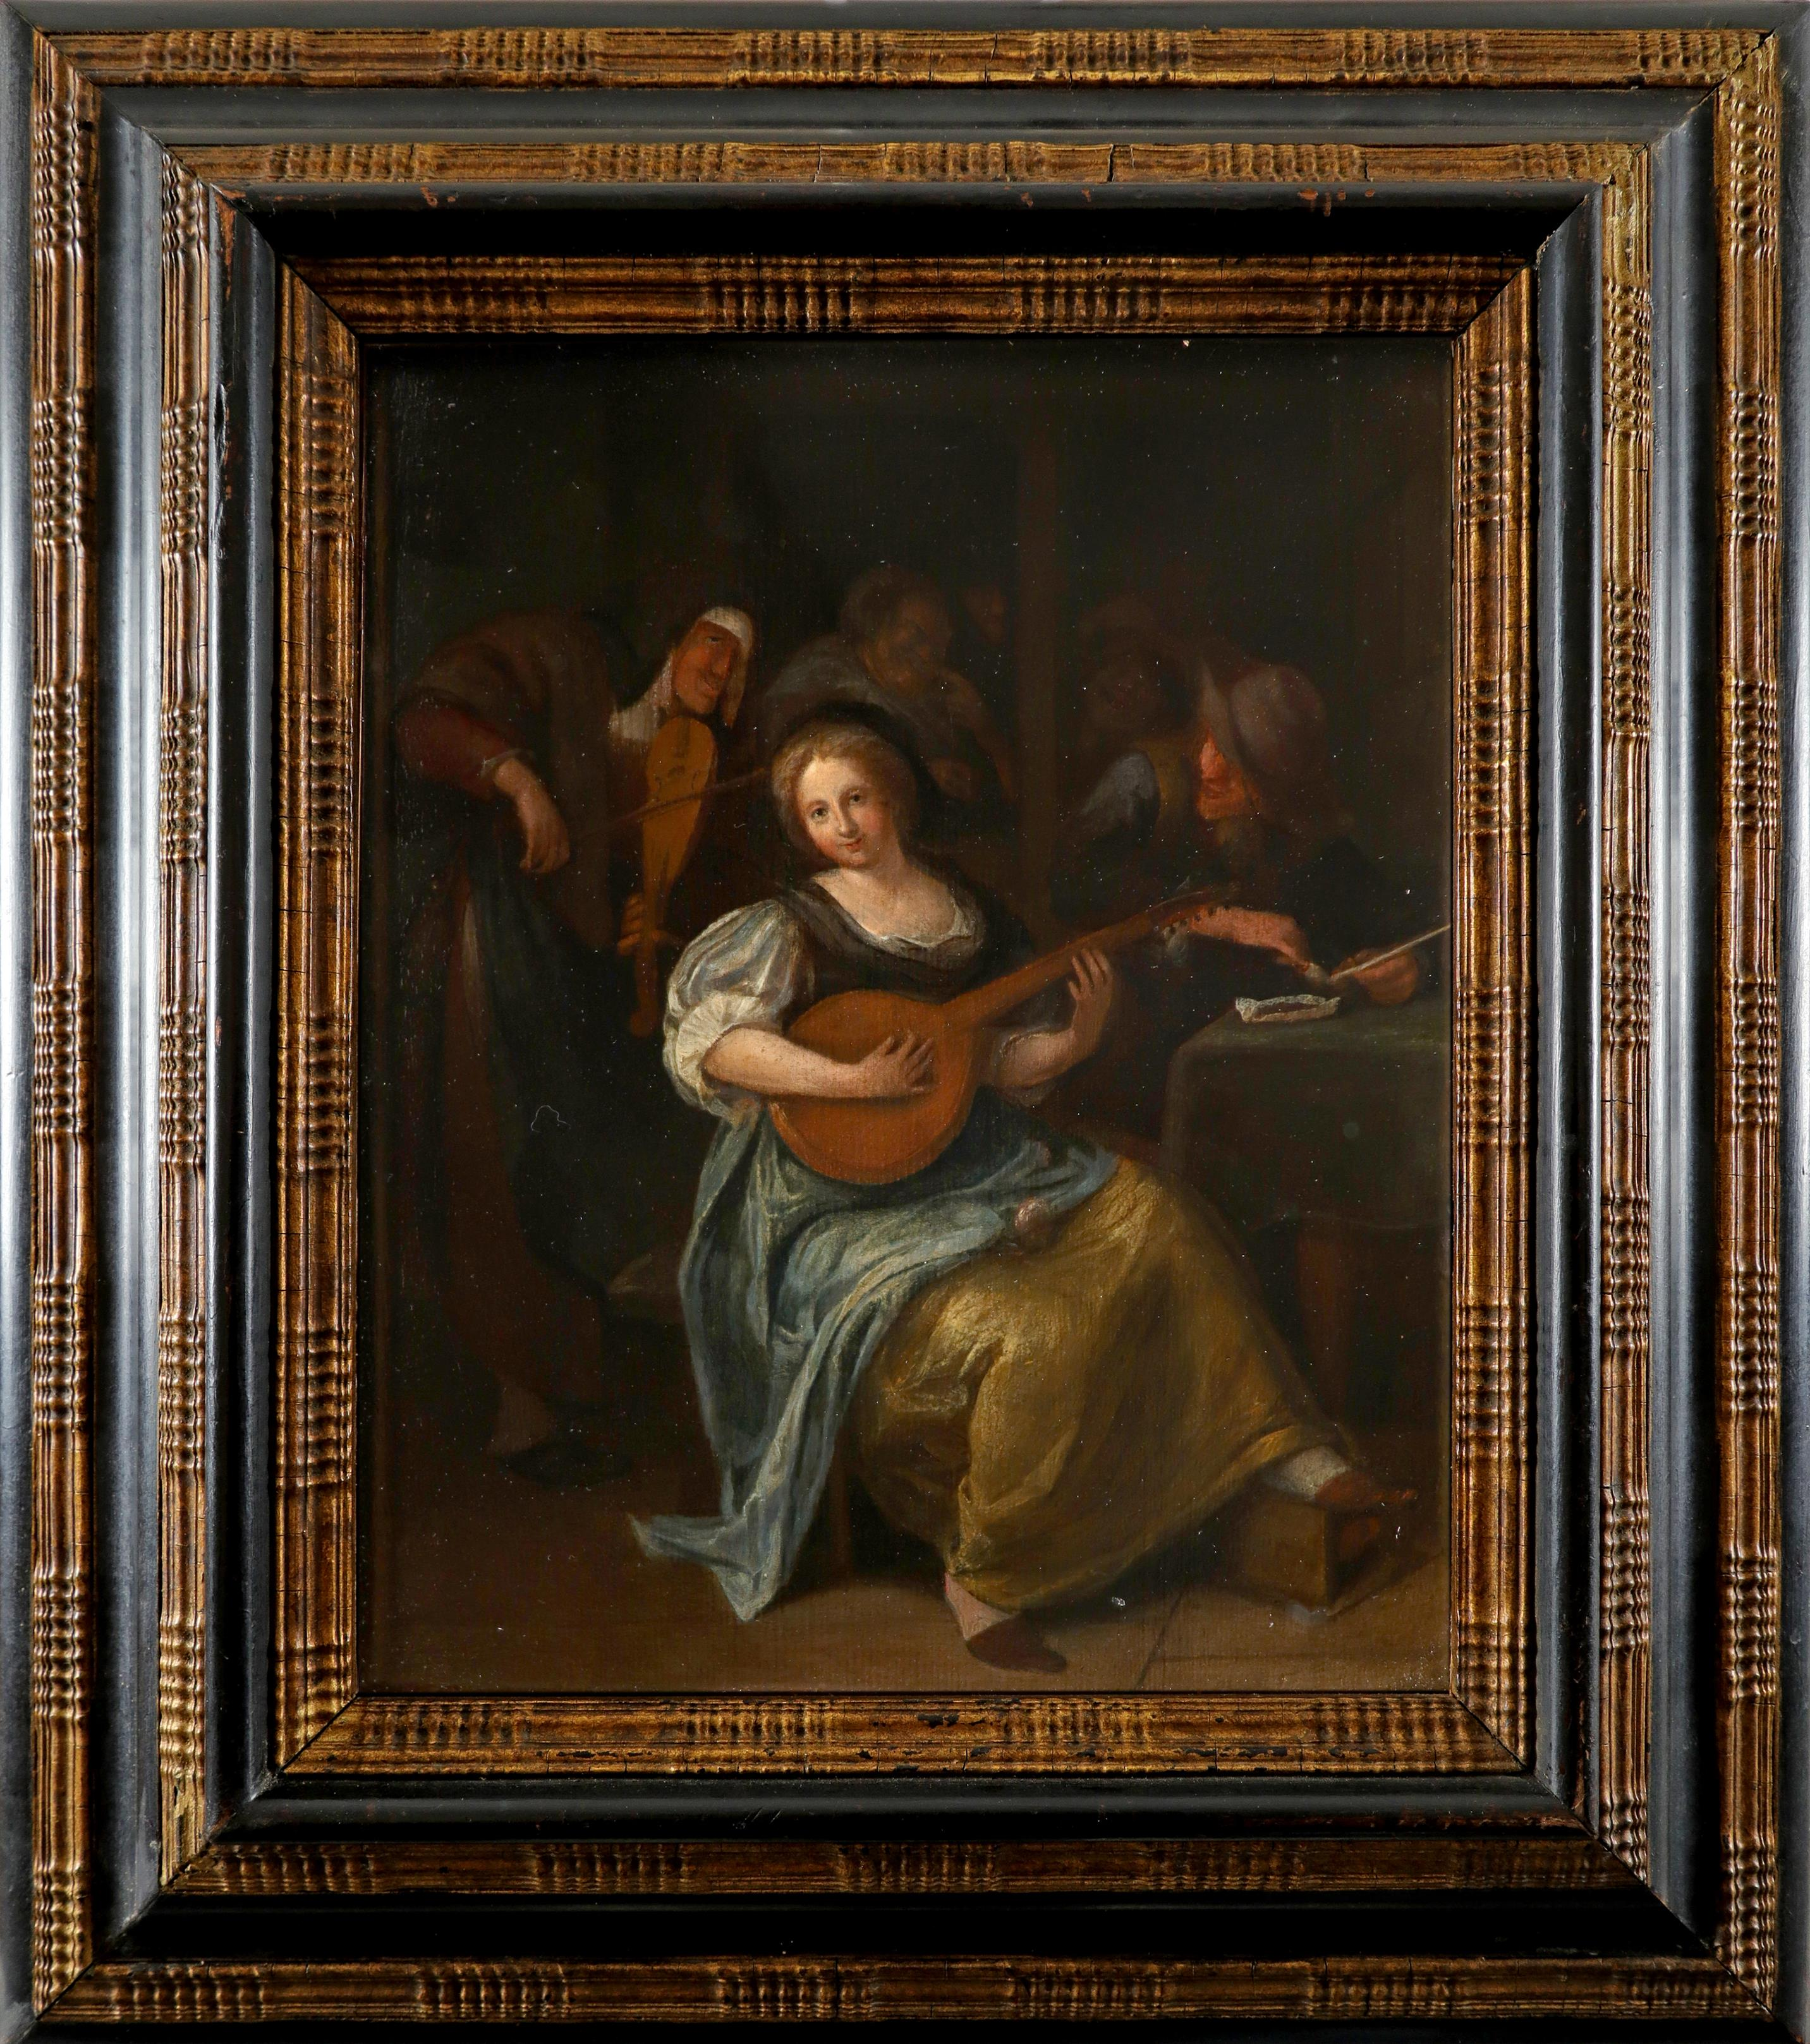 Circle of Jan Steen Tavern scene with a young woman playing a lute Oil on panel 29 x 23.5cm; 11½ x - Image 2 of 3